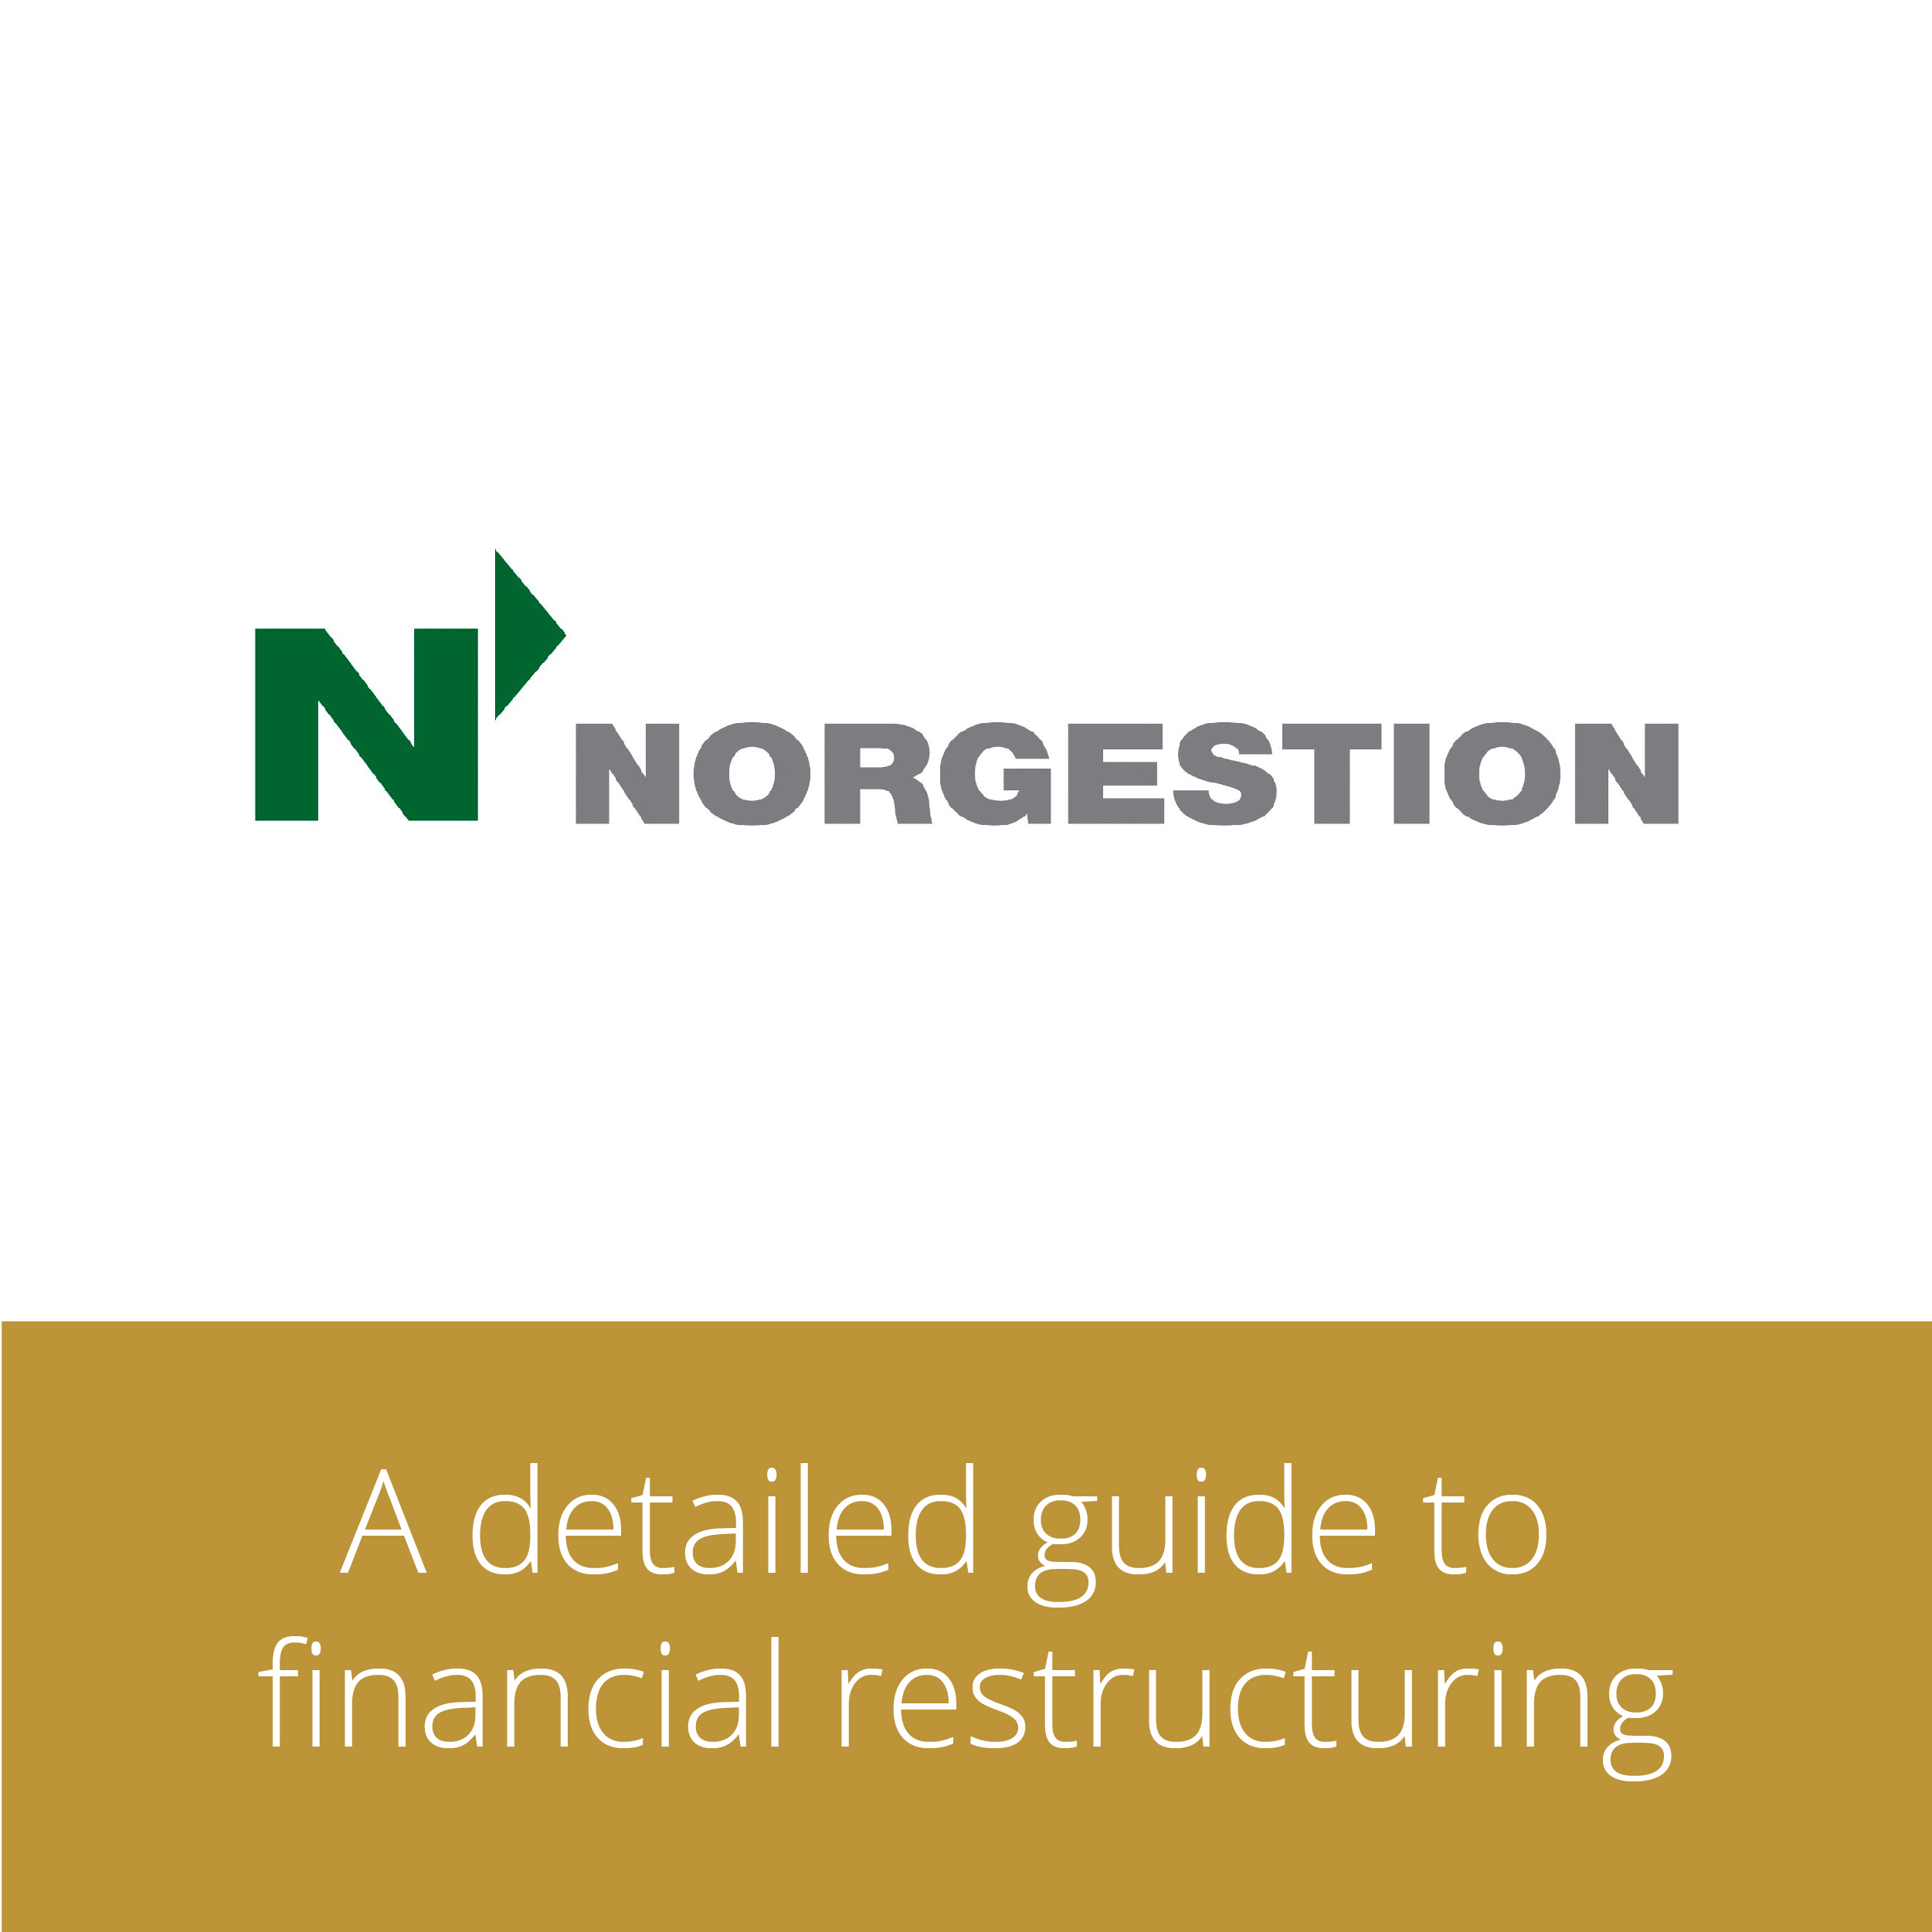 Thumbnail for Norgestion: a detailed guide to financial restructuring